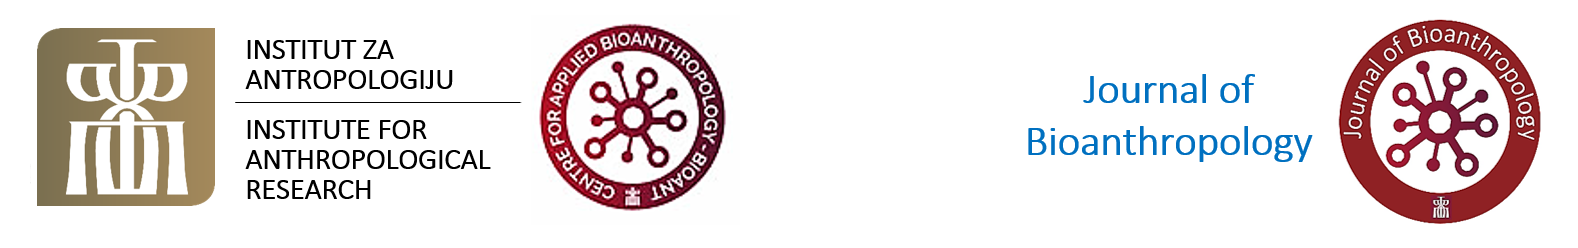 Institute for Anthropological Research Logo